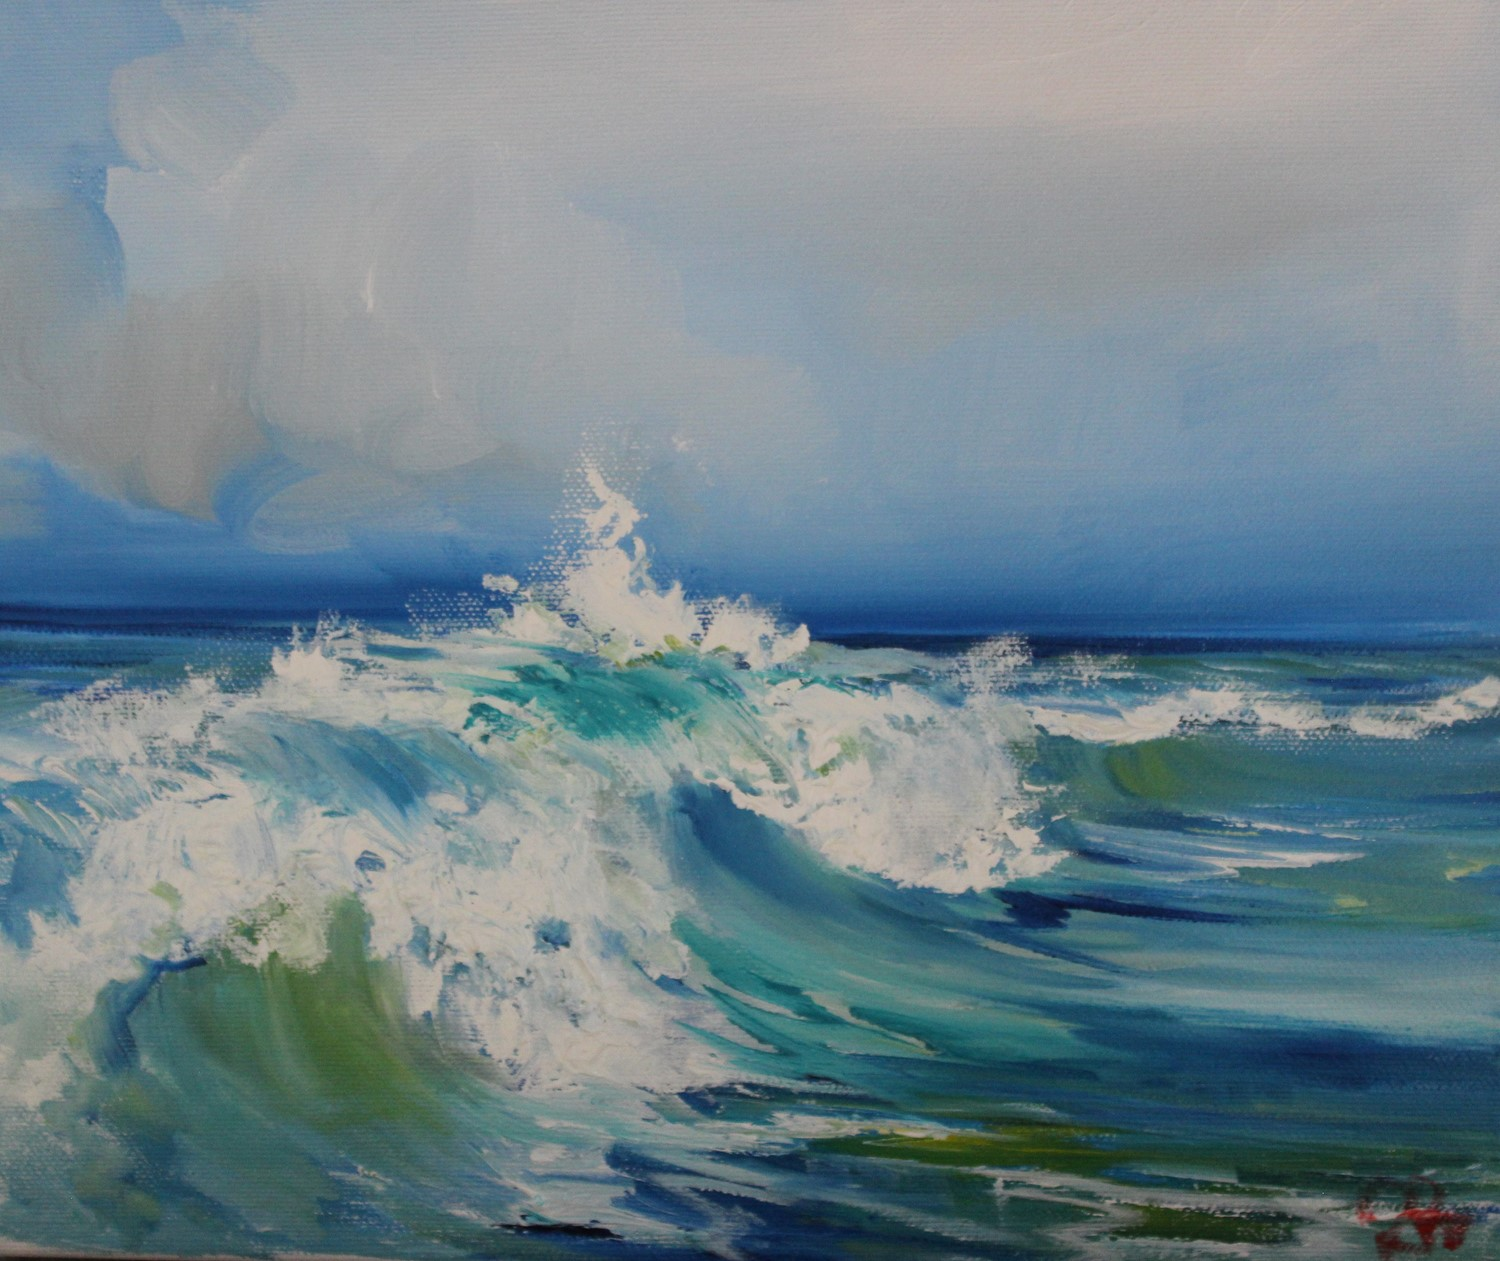 'Frothy Waves' by artist Rosanne Barr